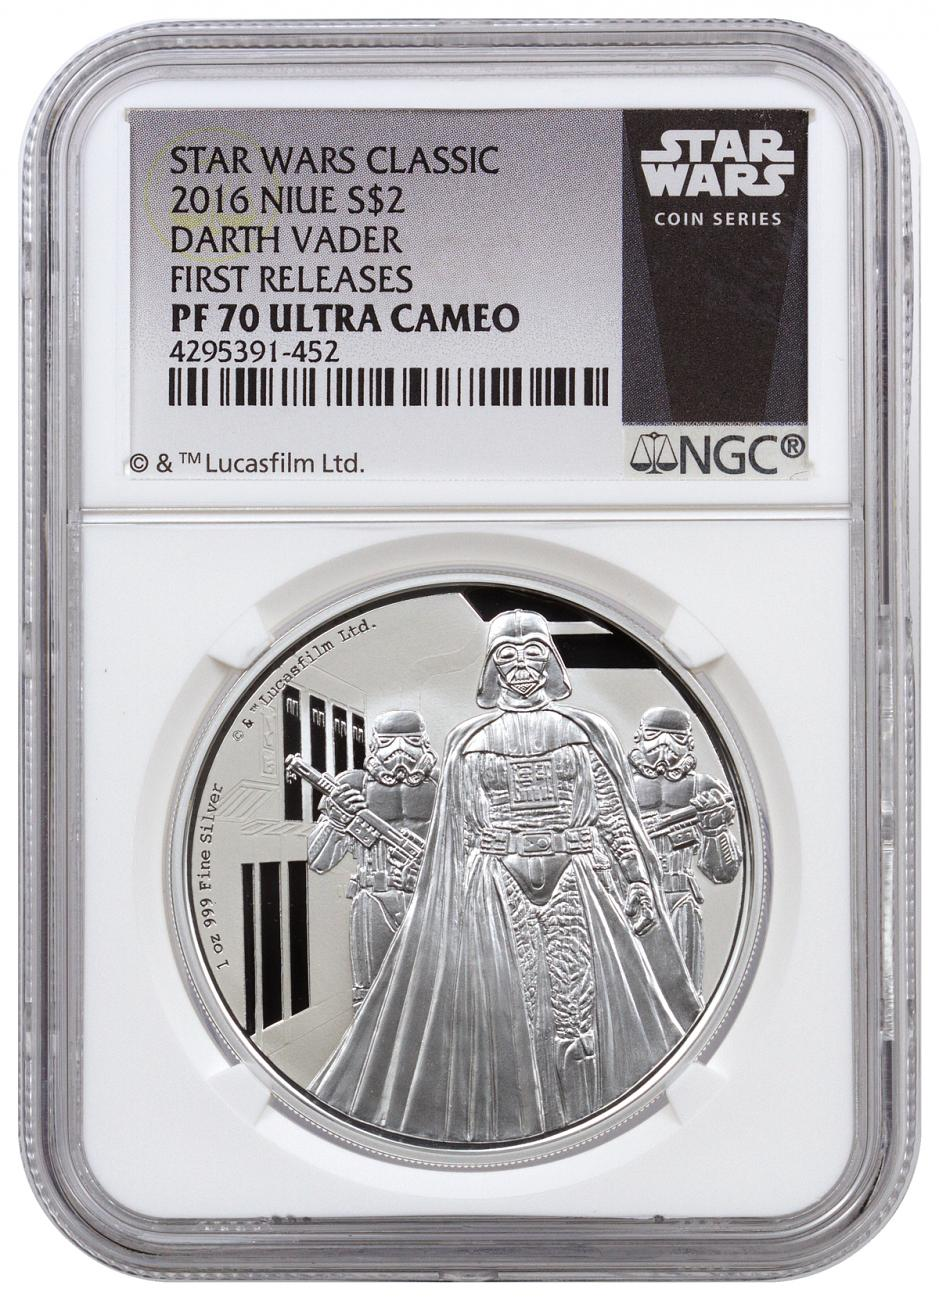 2016 Niue Star Wars Classic - Darth Vader 1 oz Silver Proof $2 NGC PR70 FR (Exclusive Star Wars Label)